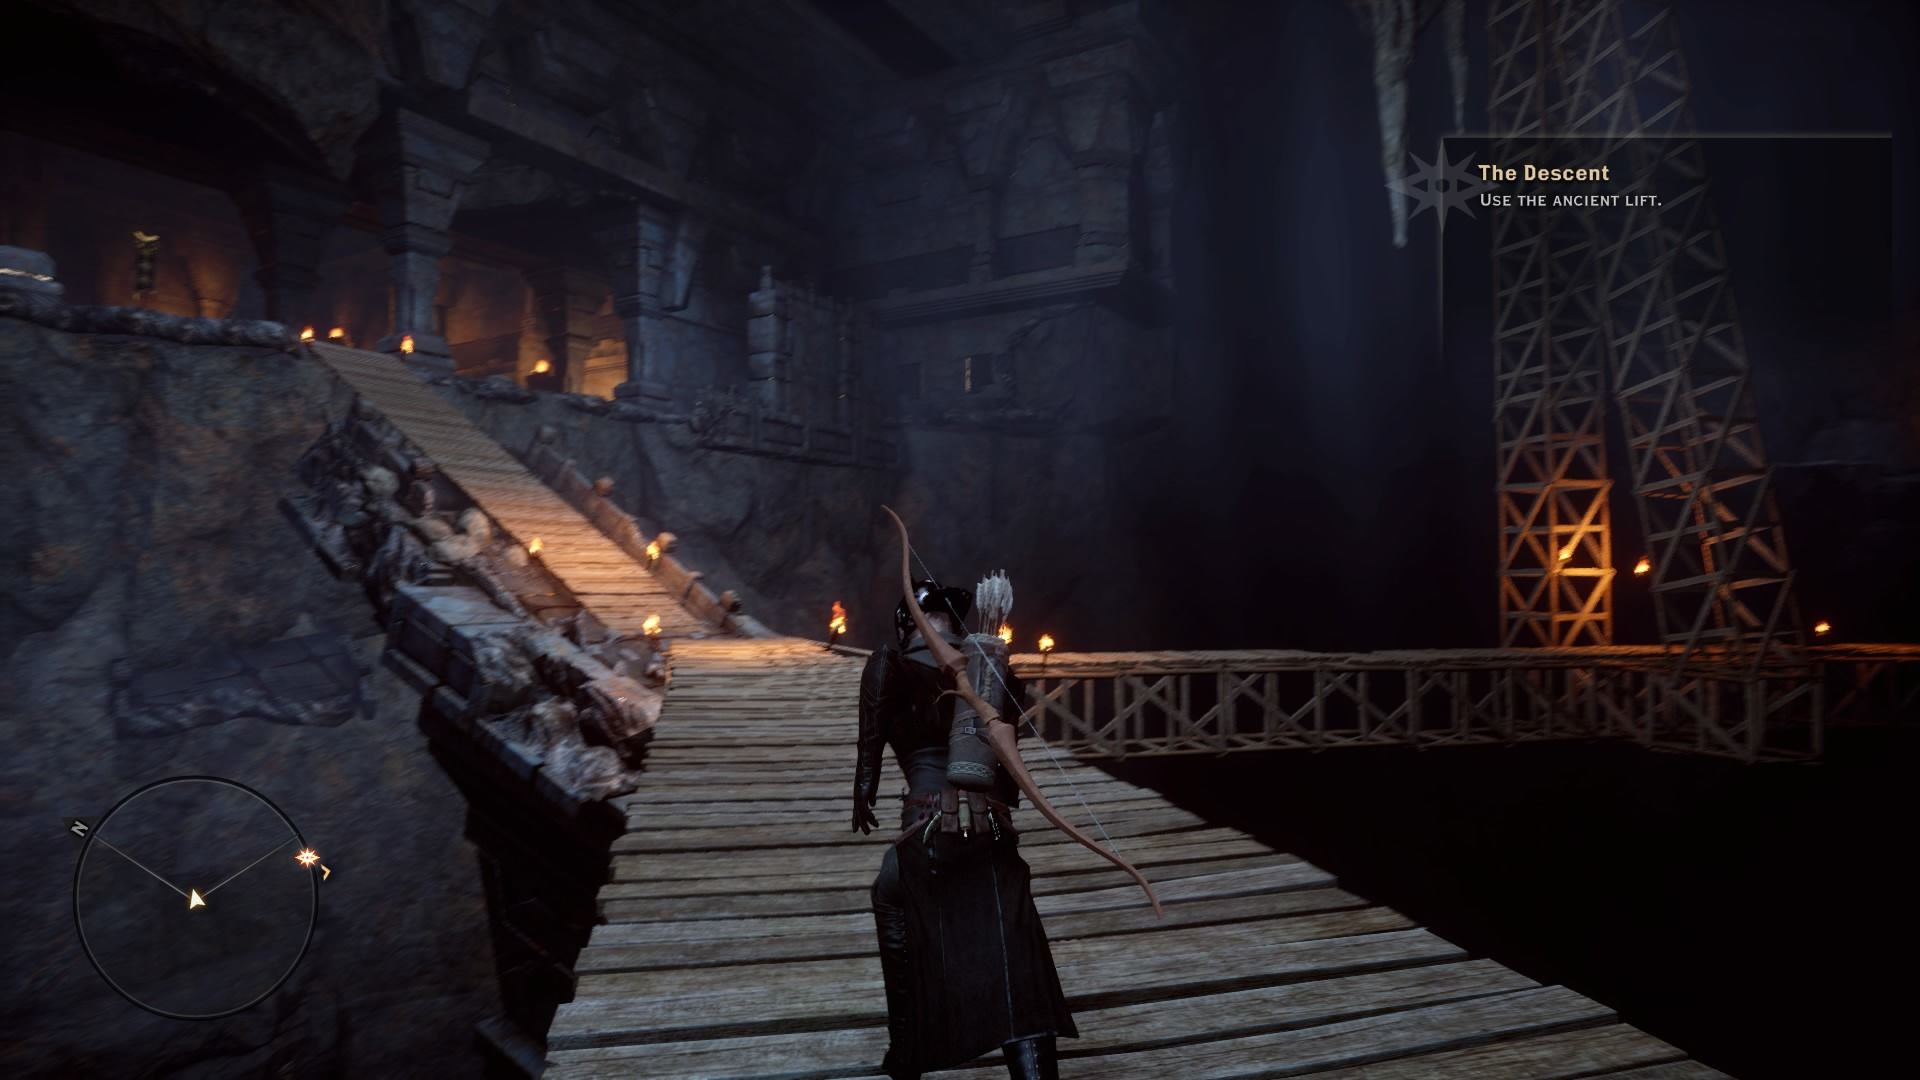 Dragon Age: Inquisition - The Descent PlayStation 4 Building wooden bridges lets you cross the chasms and reach new areas